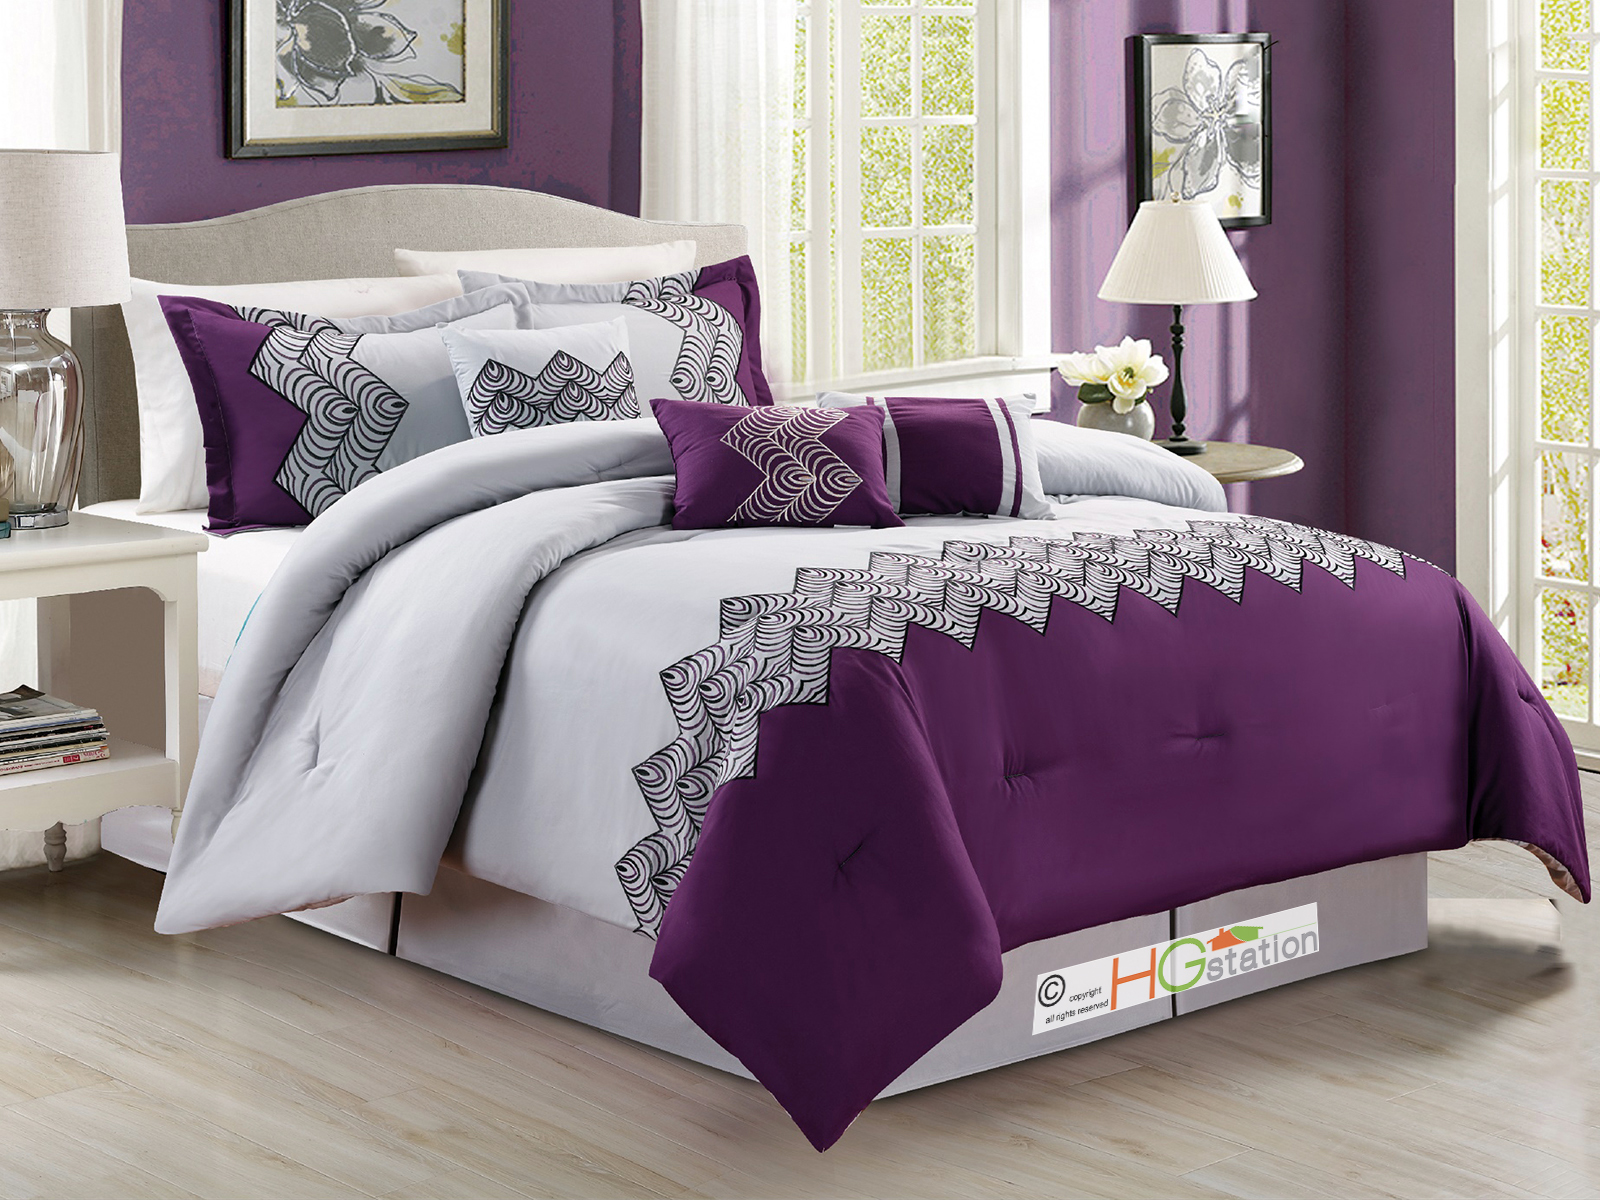 7p zigzag chevron curved embroidery comforter set purple for Purple black white and silver bedroom